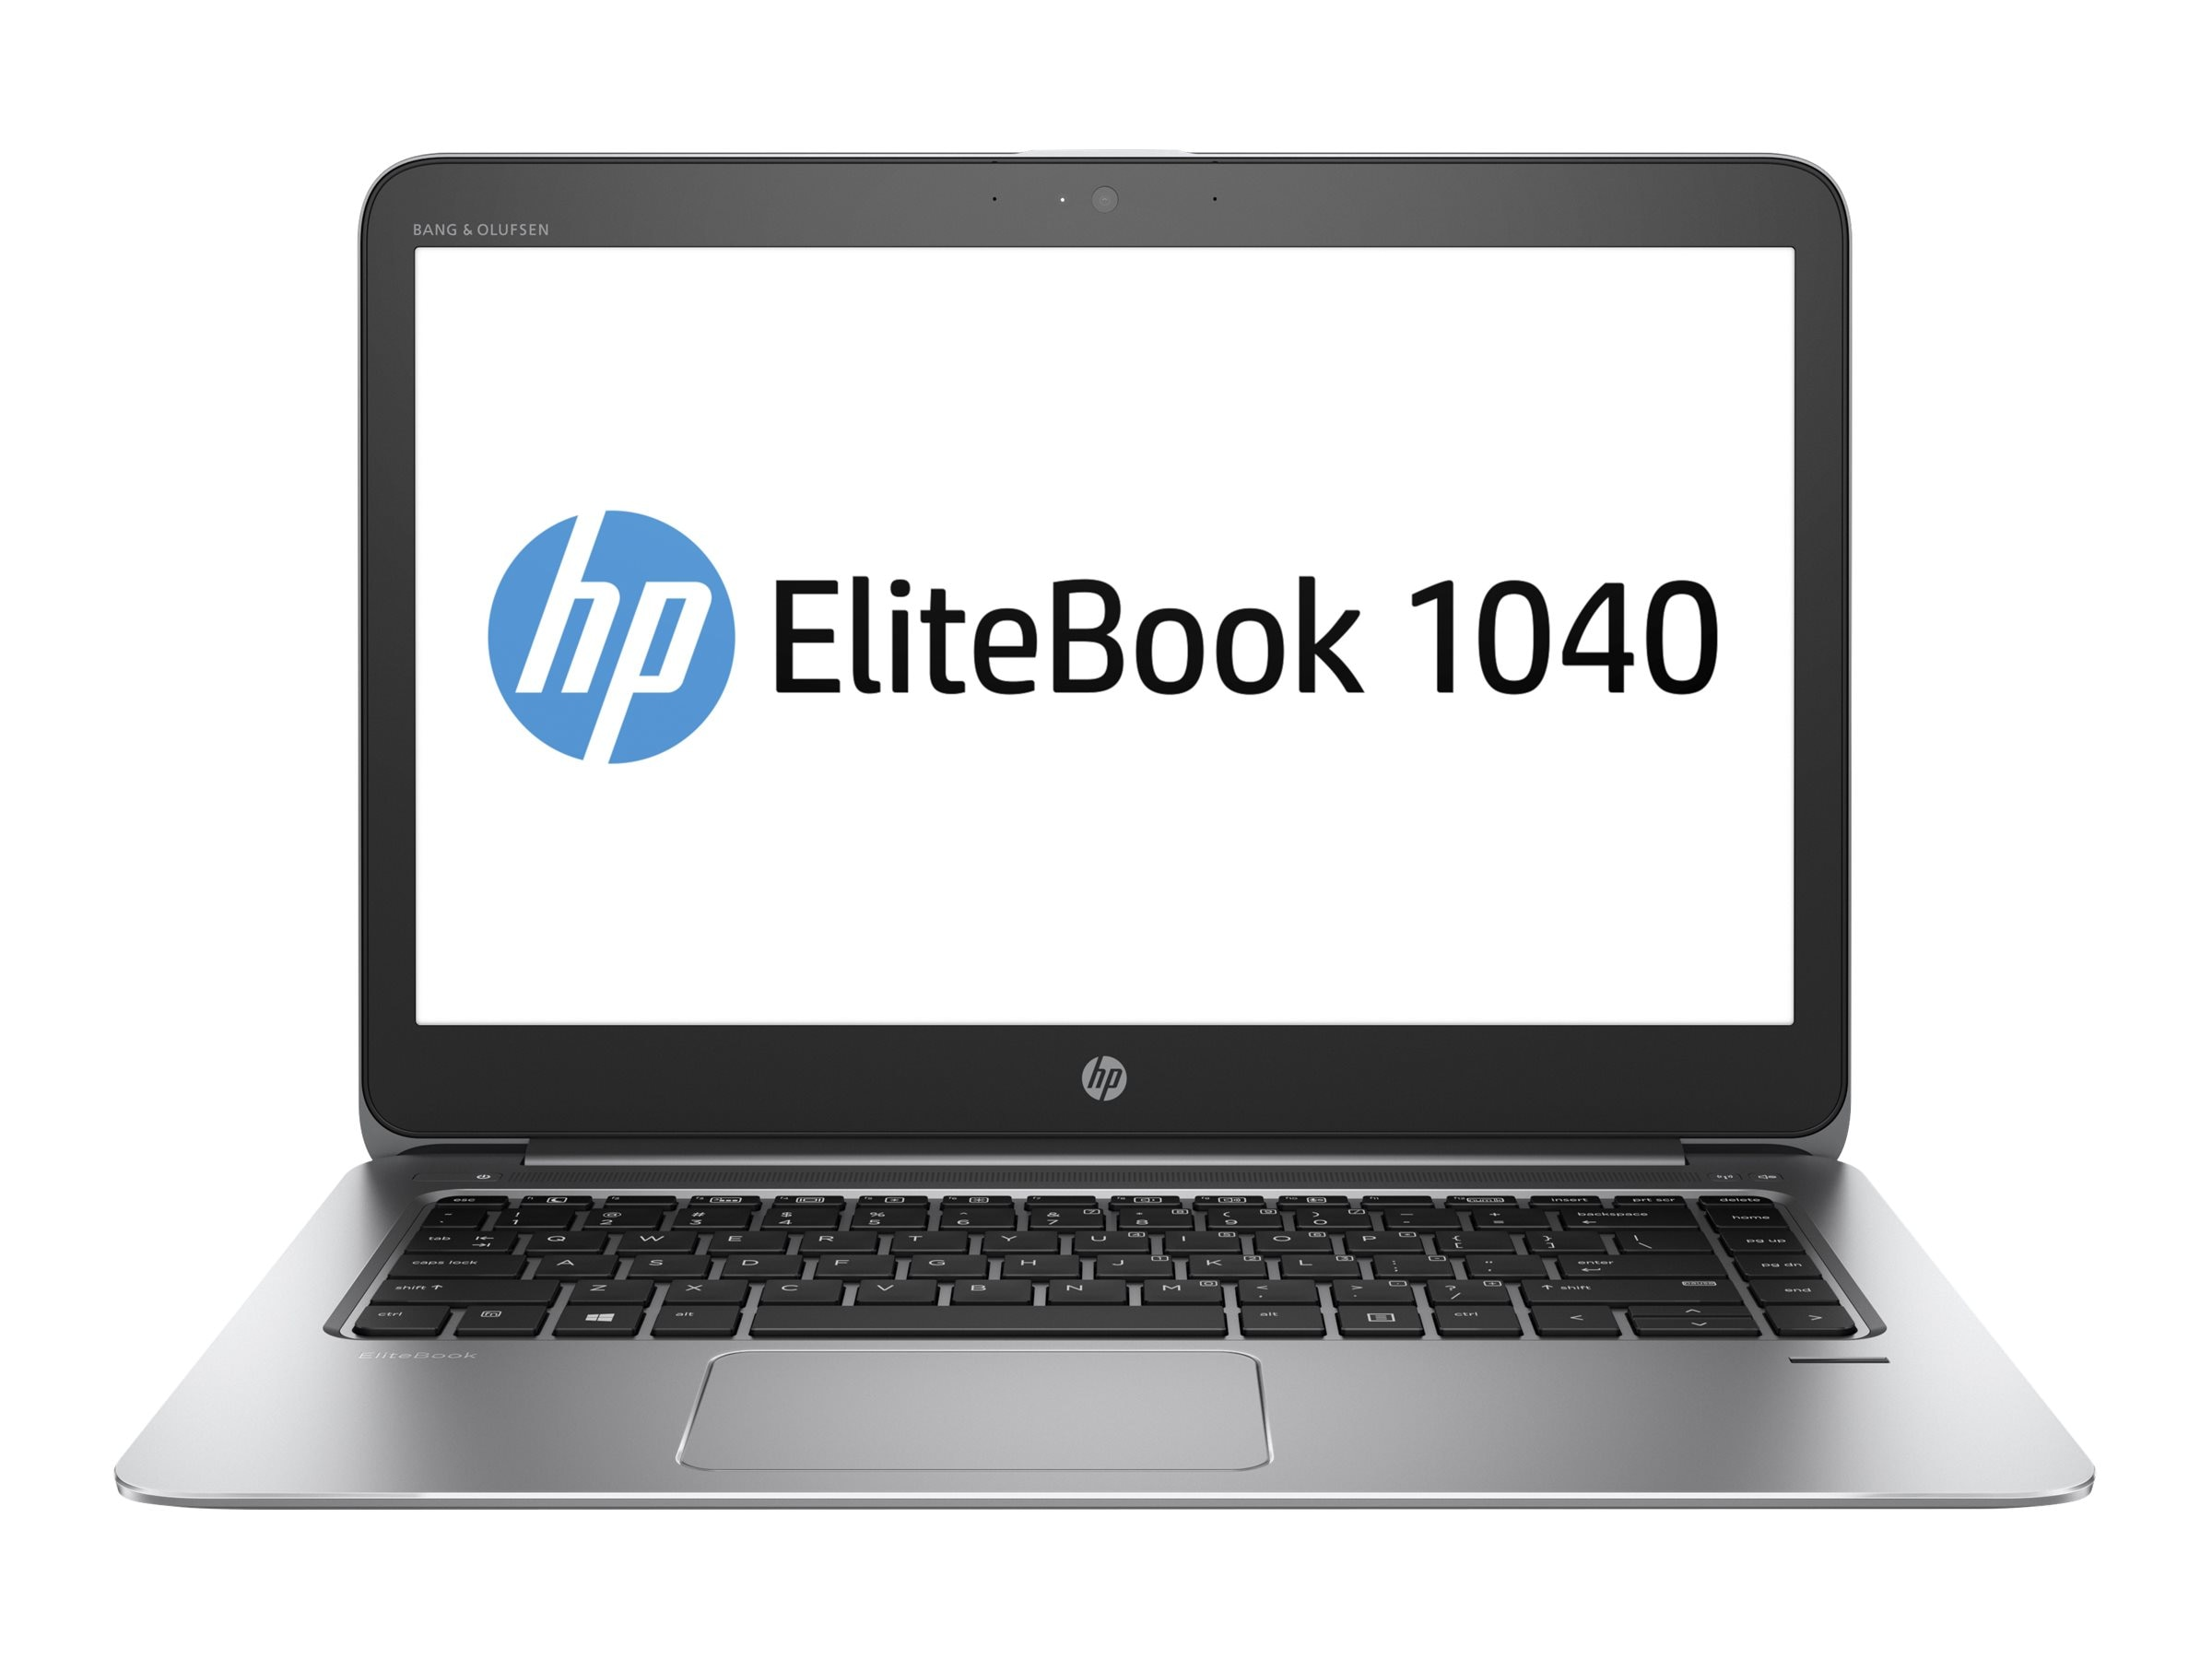 HP EliteBook 1040 G3 2.6GHz Core i7 14in display, Y9G29UT#ABA